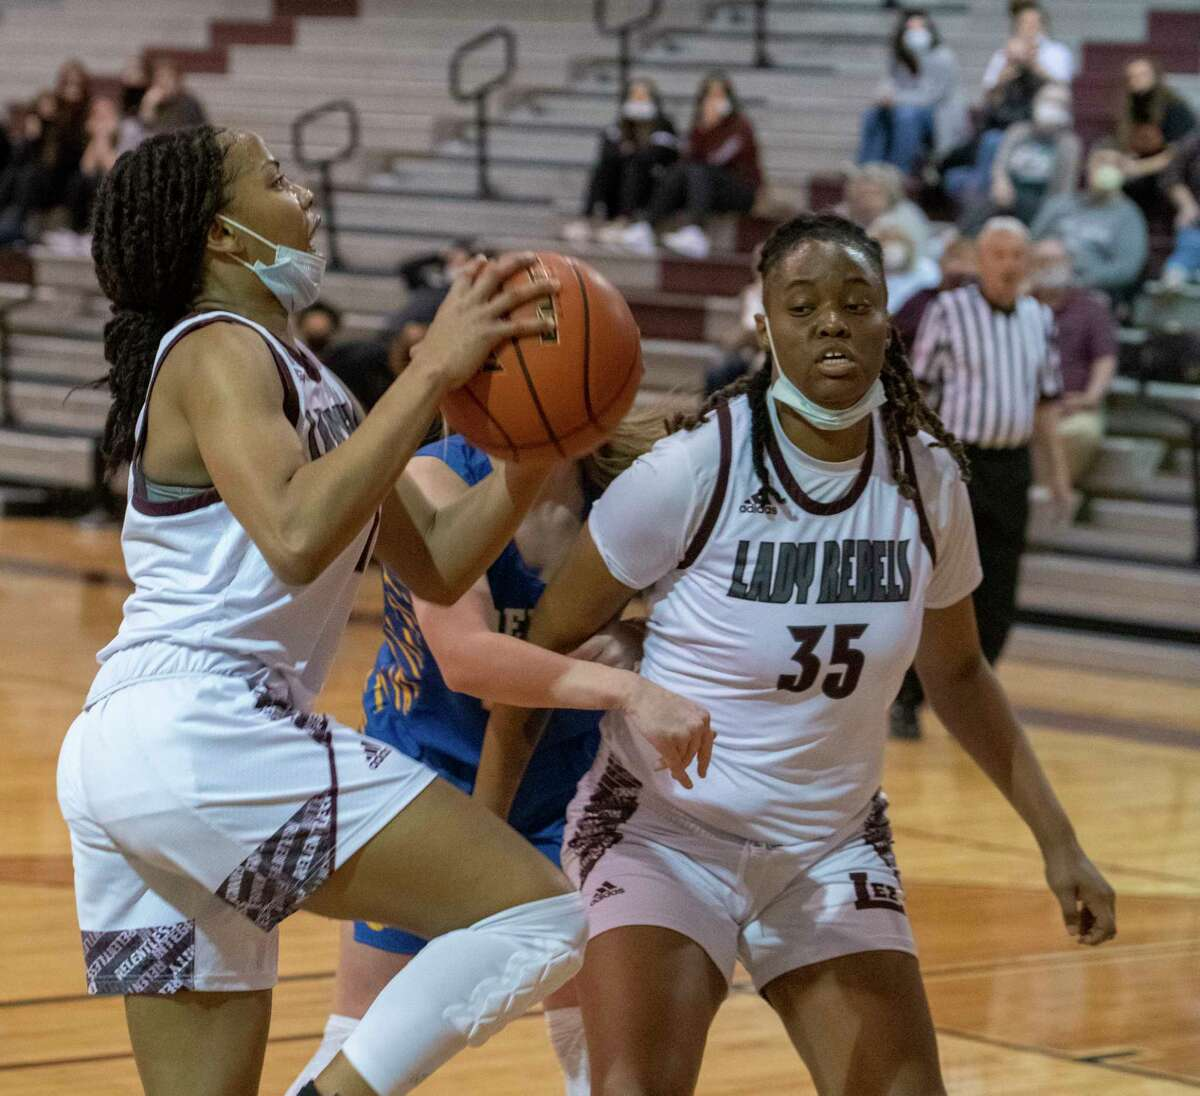 Lee High's Myleah Young drives in for a layup as she gets around a pick by Kamaurie Lee 01/22/2021 at the Lee High gym. Tim Fischer/Reporter-Telegram